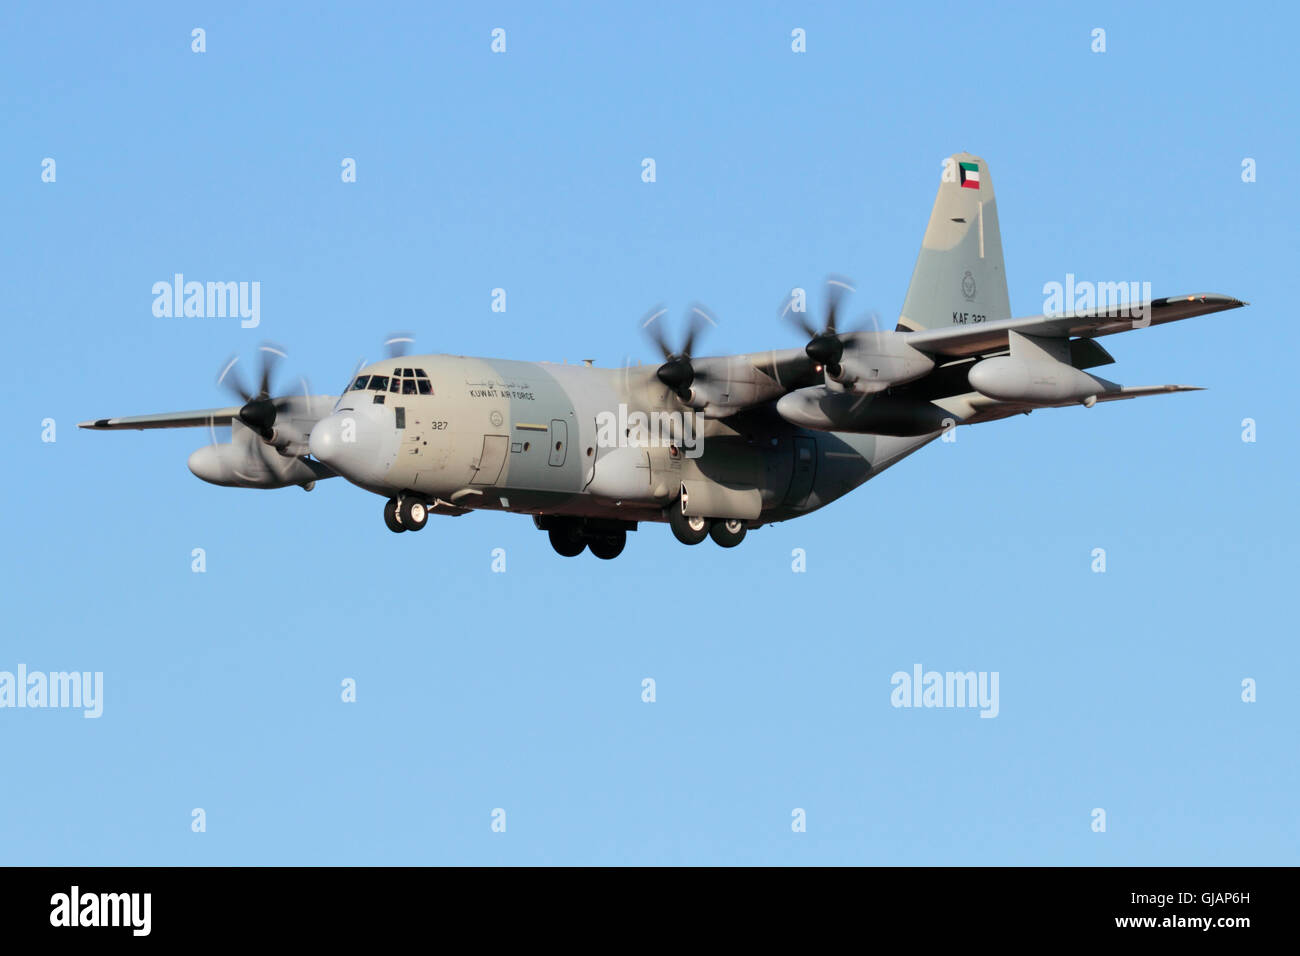 Kuwait Air Force Lockheed Martin KC-130J Hercules military transport airplane on approach - Stock Image